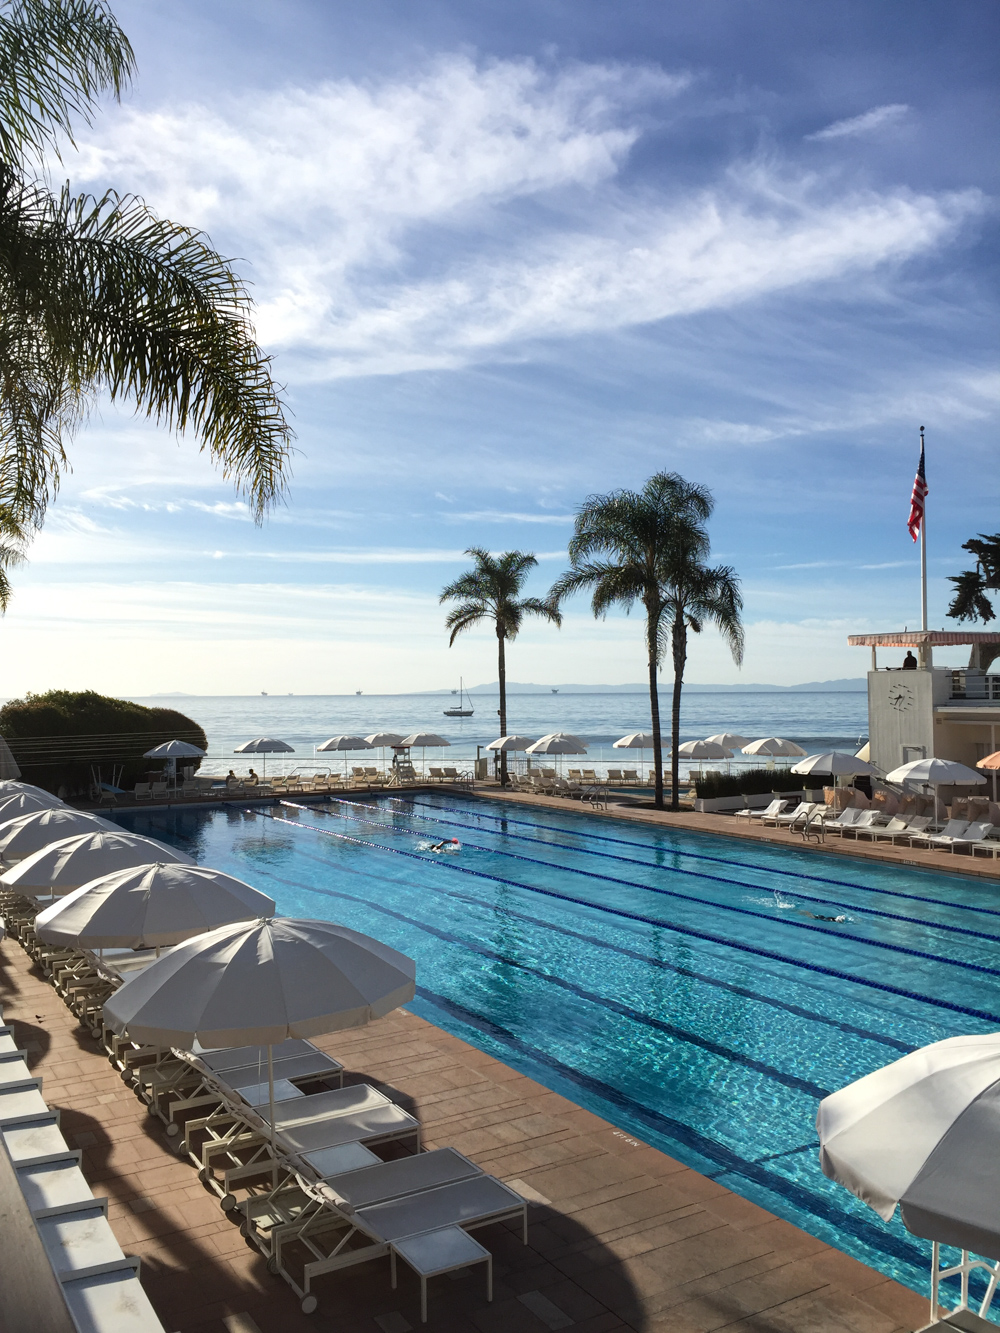 Four Seasons The Biltmore in Santa Barbara and the Coral Casino Beach and Cabana Club Pool